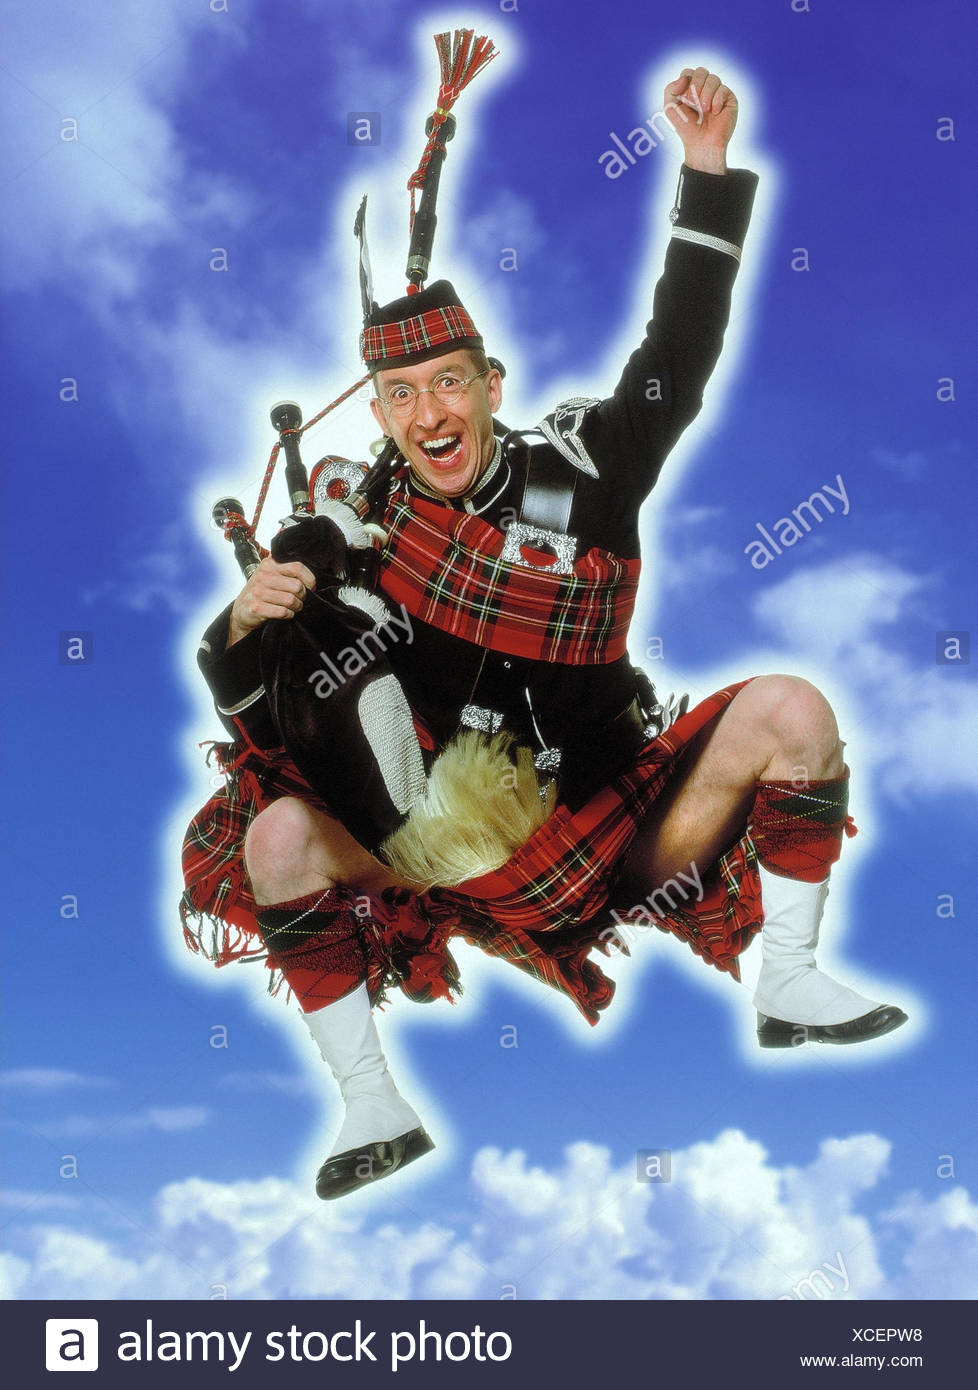 Bulkheads, kilt, bagpipes, caper, gesture, enthusiasm, cloudy sky studio, man, national costume, clothes, traditionally, glasses, cheering, joy, success, crack, jump - Stock Image